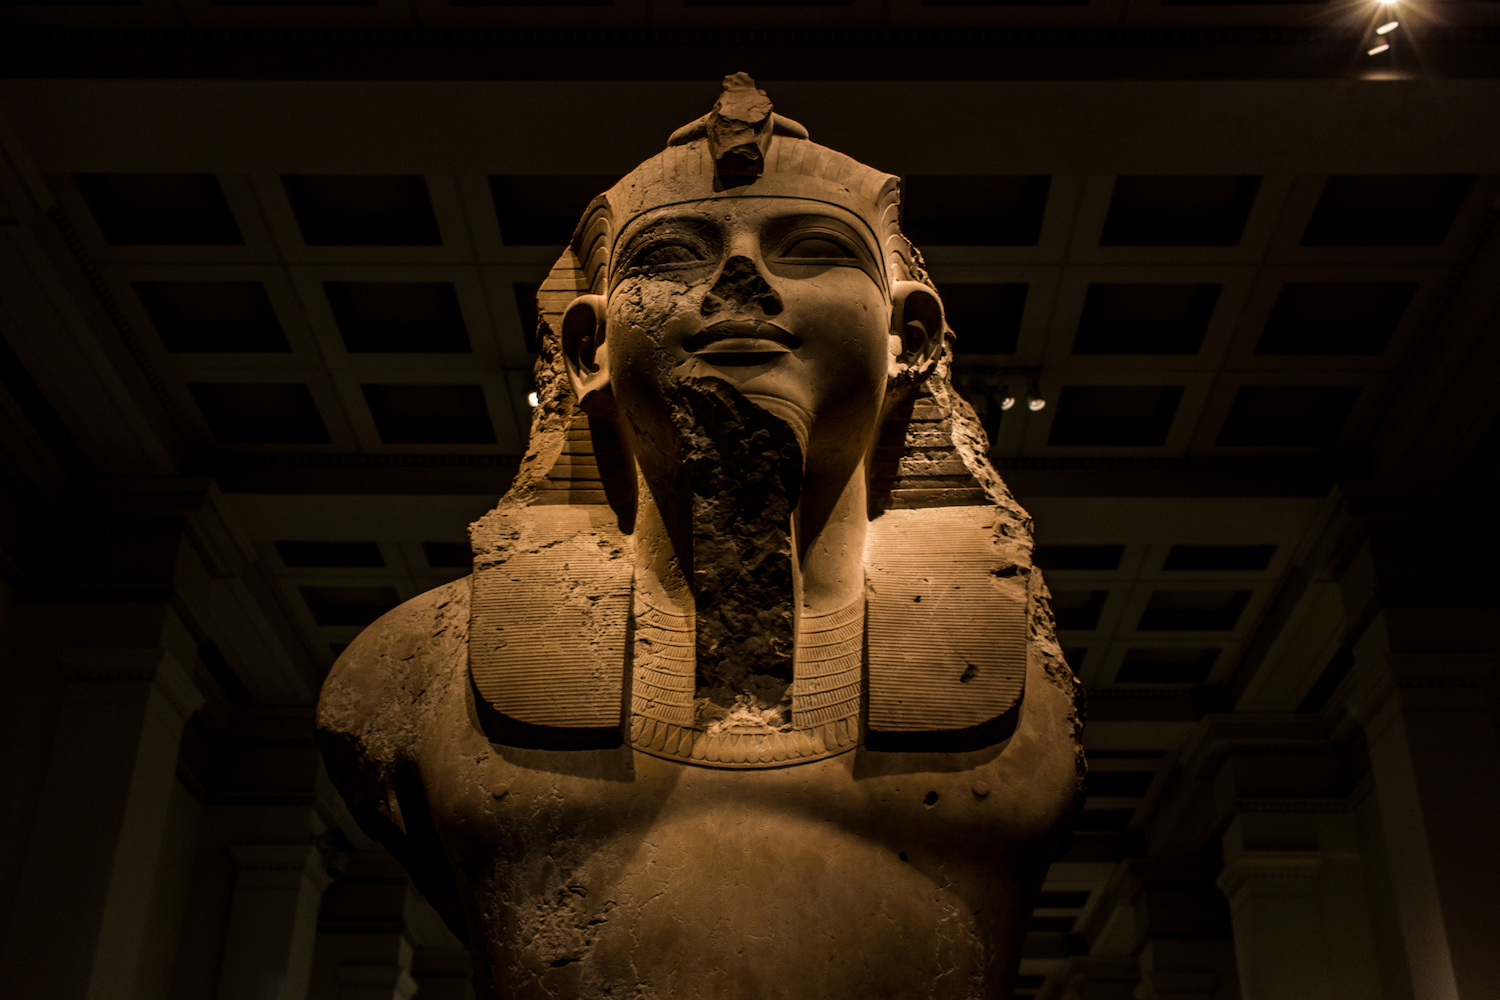 Professional Photography Close-Up Stone Sculpture From Kemet Egypt Of King Amenophis III In British Museum London